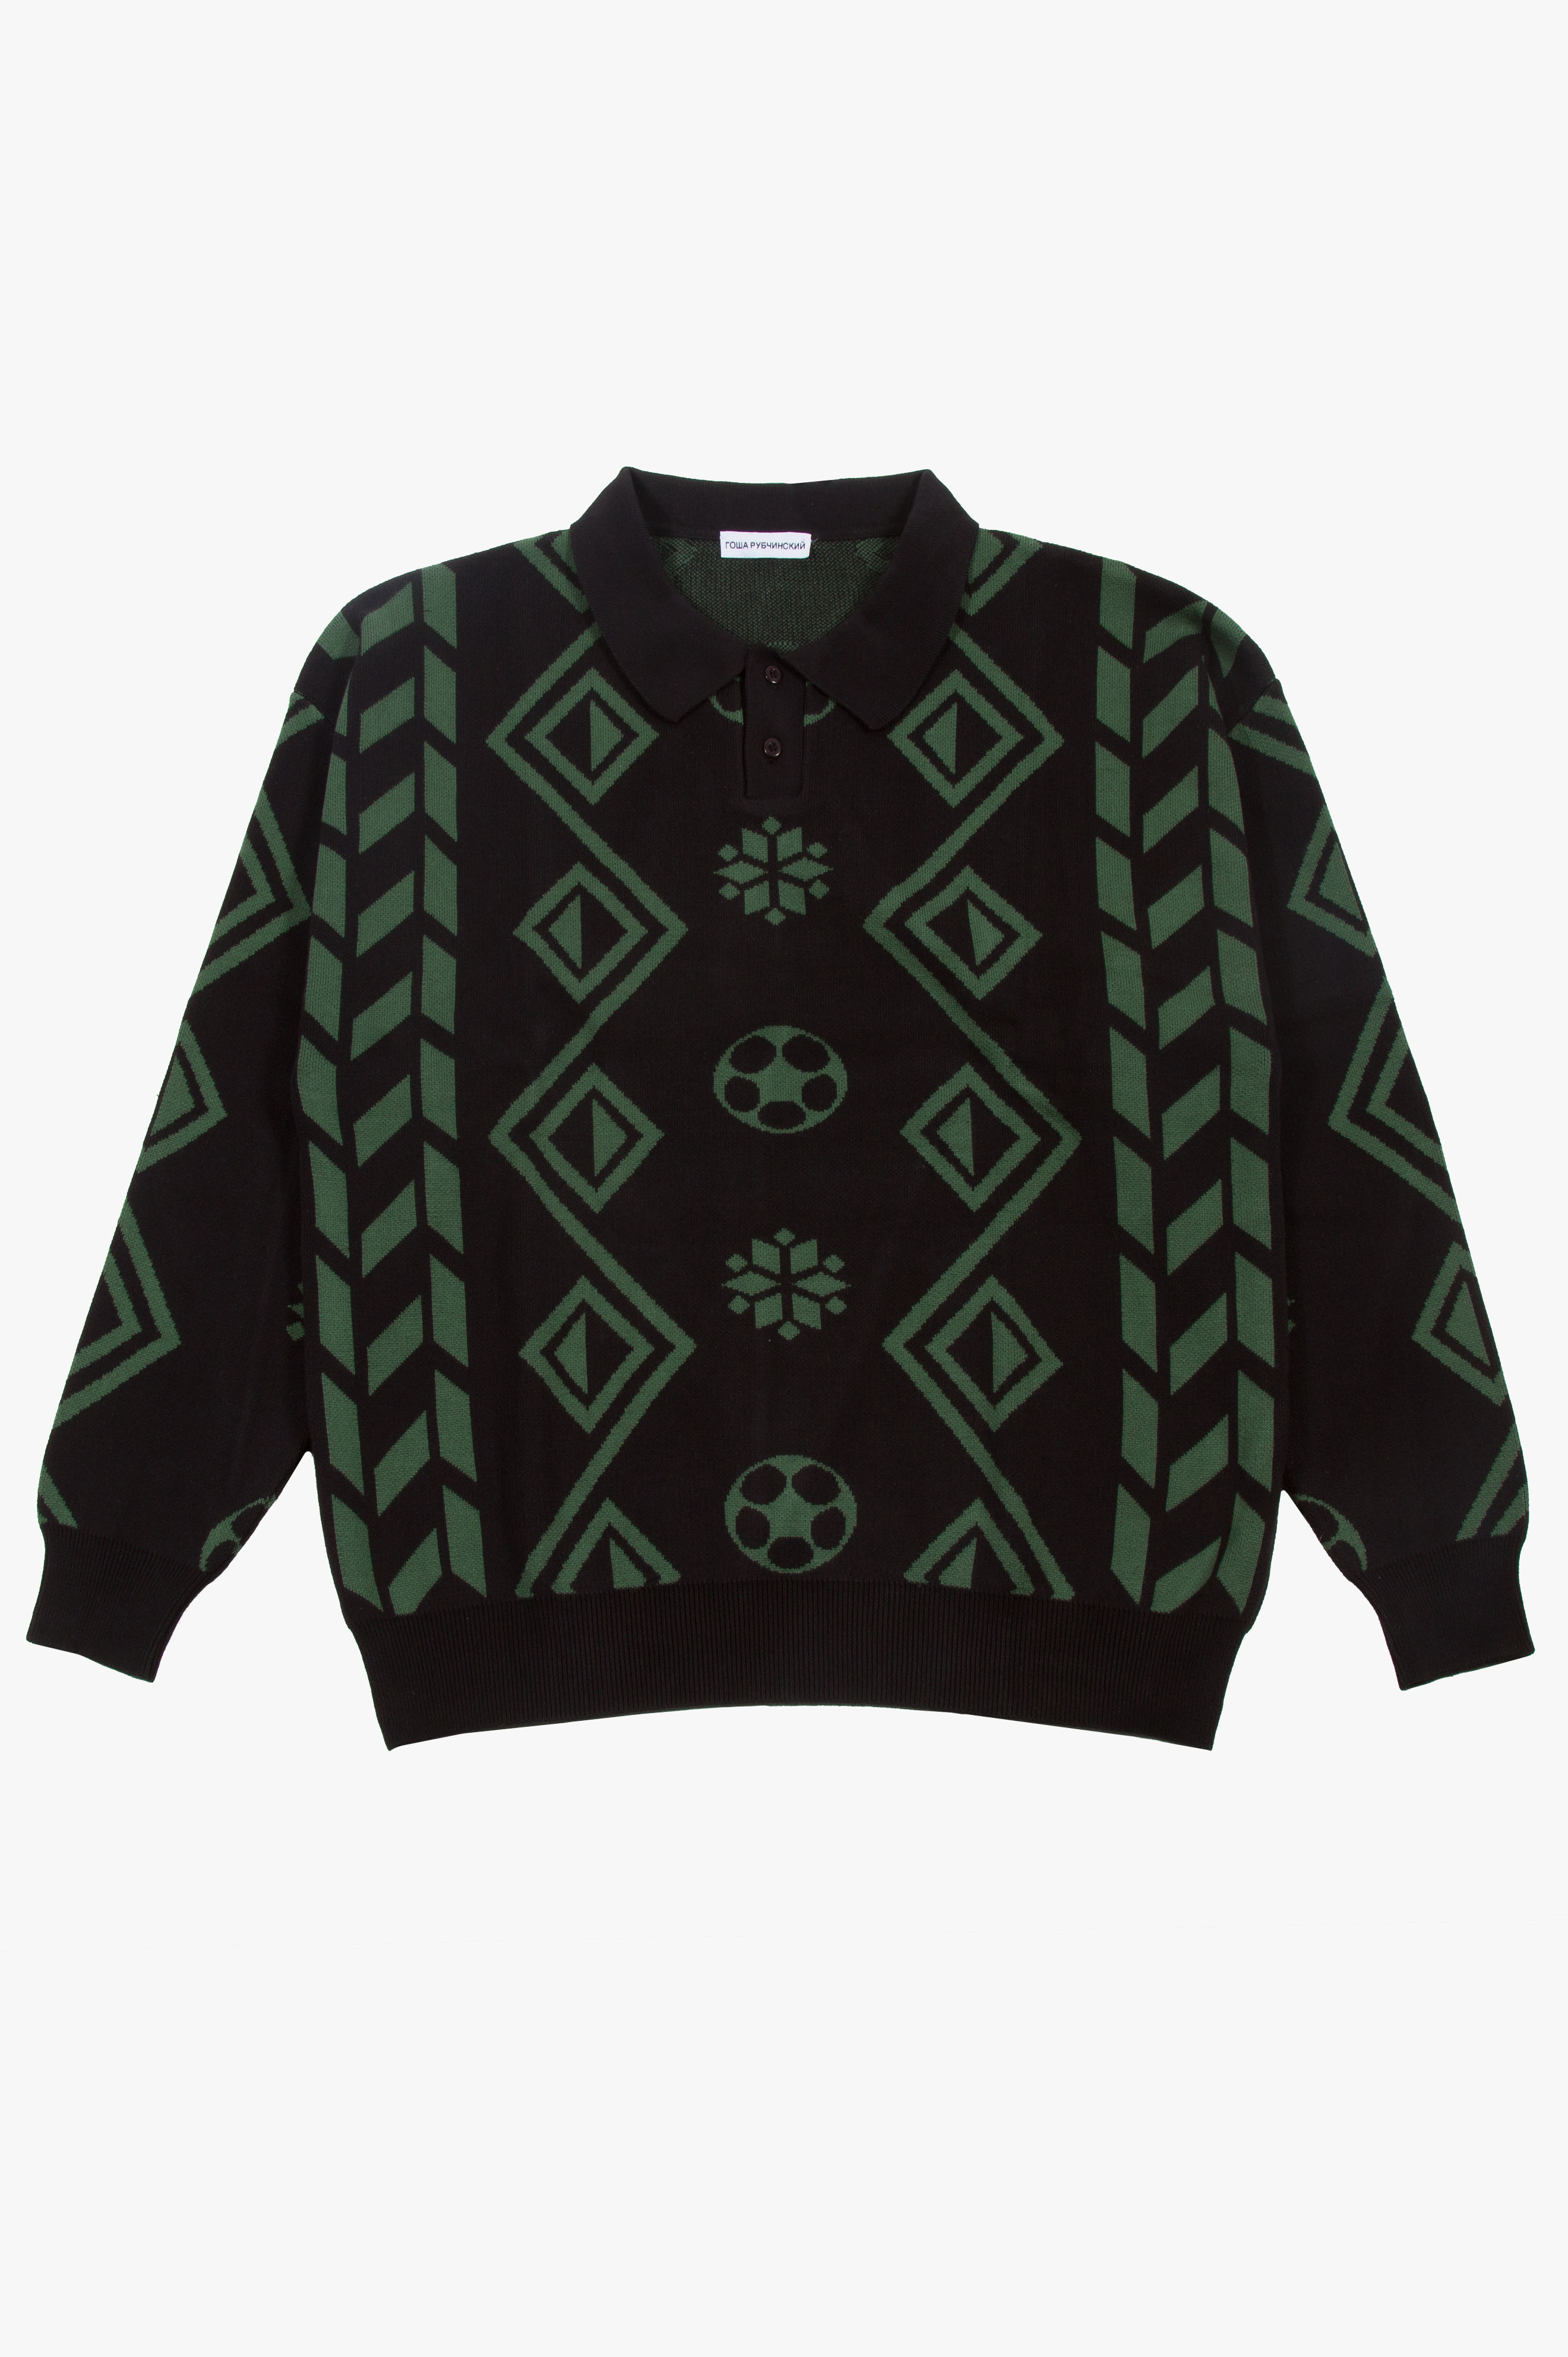 Geometry Knit Sweater Black/Green